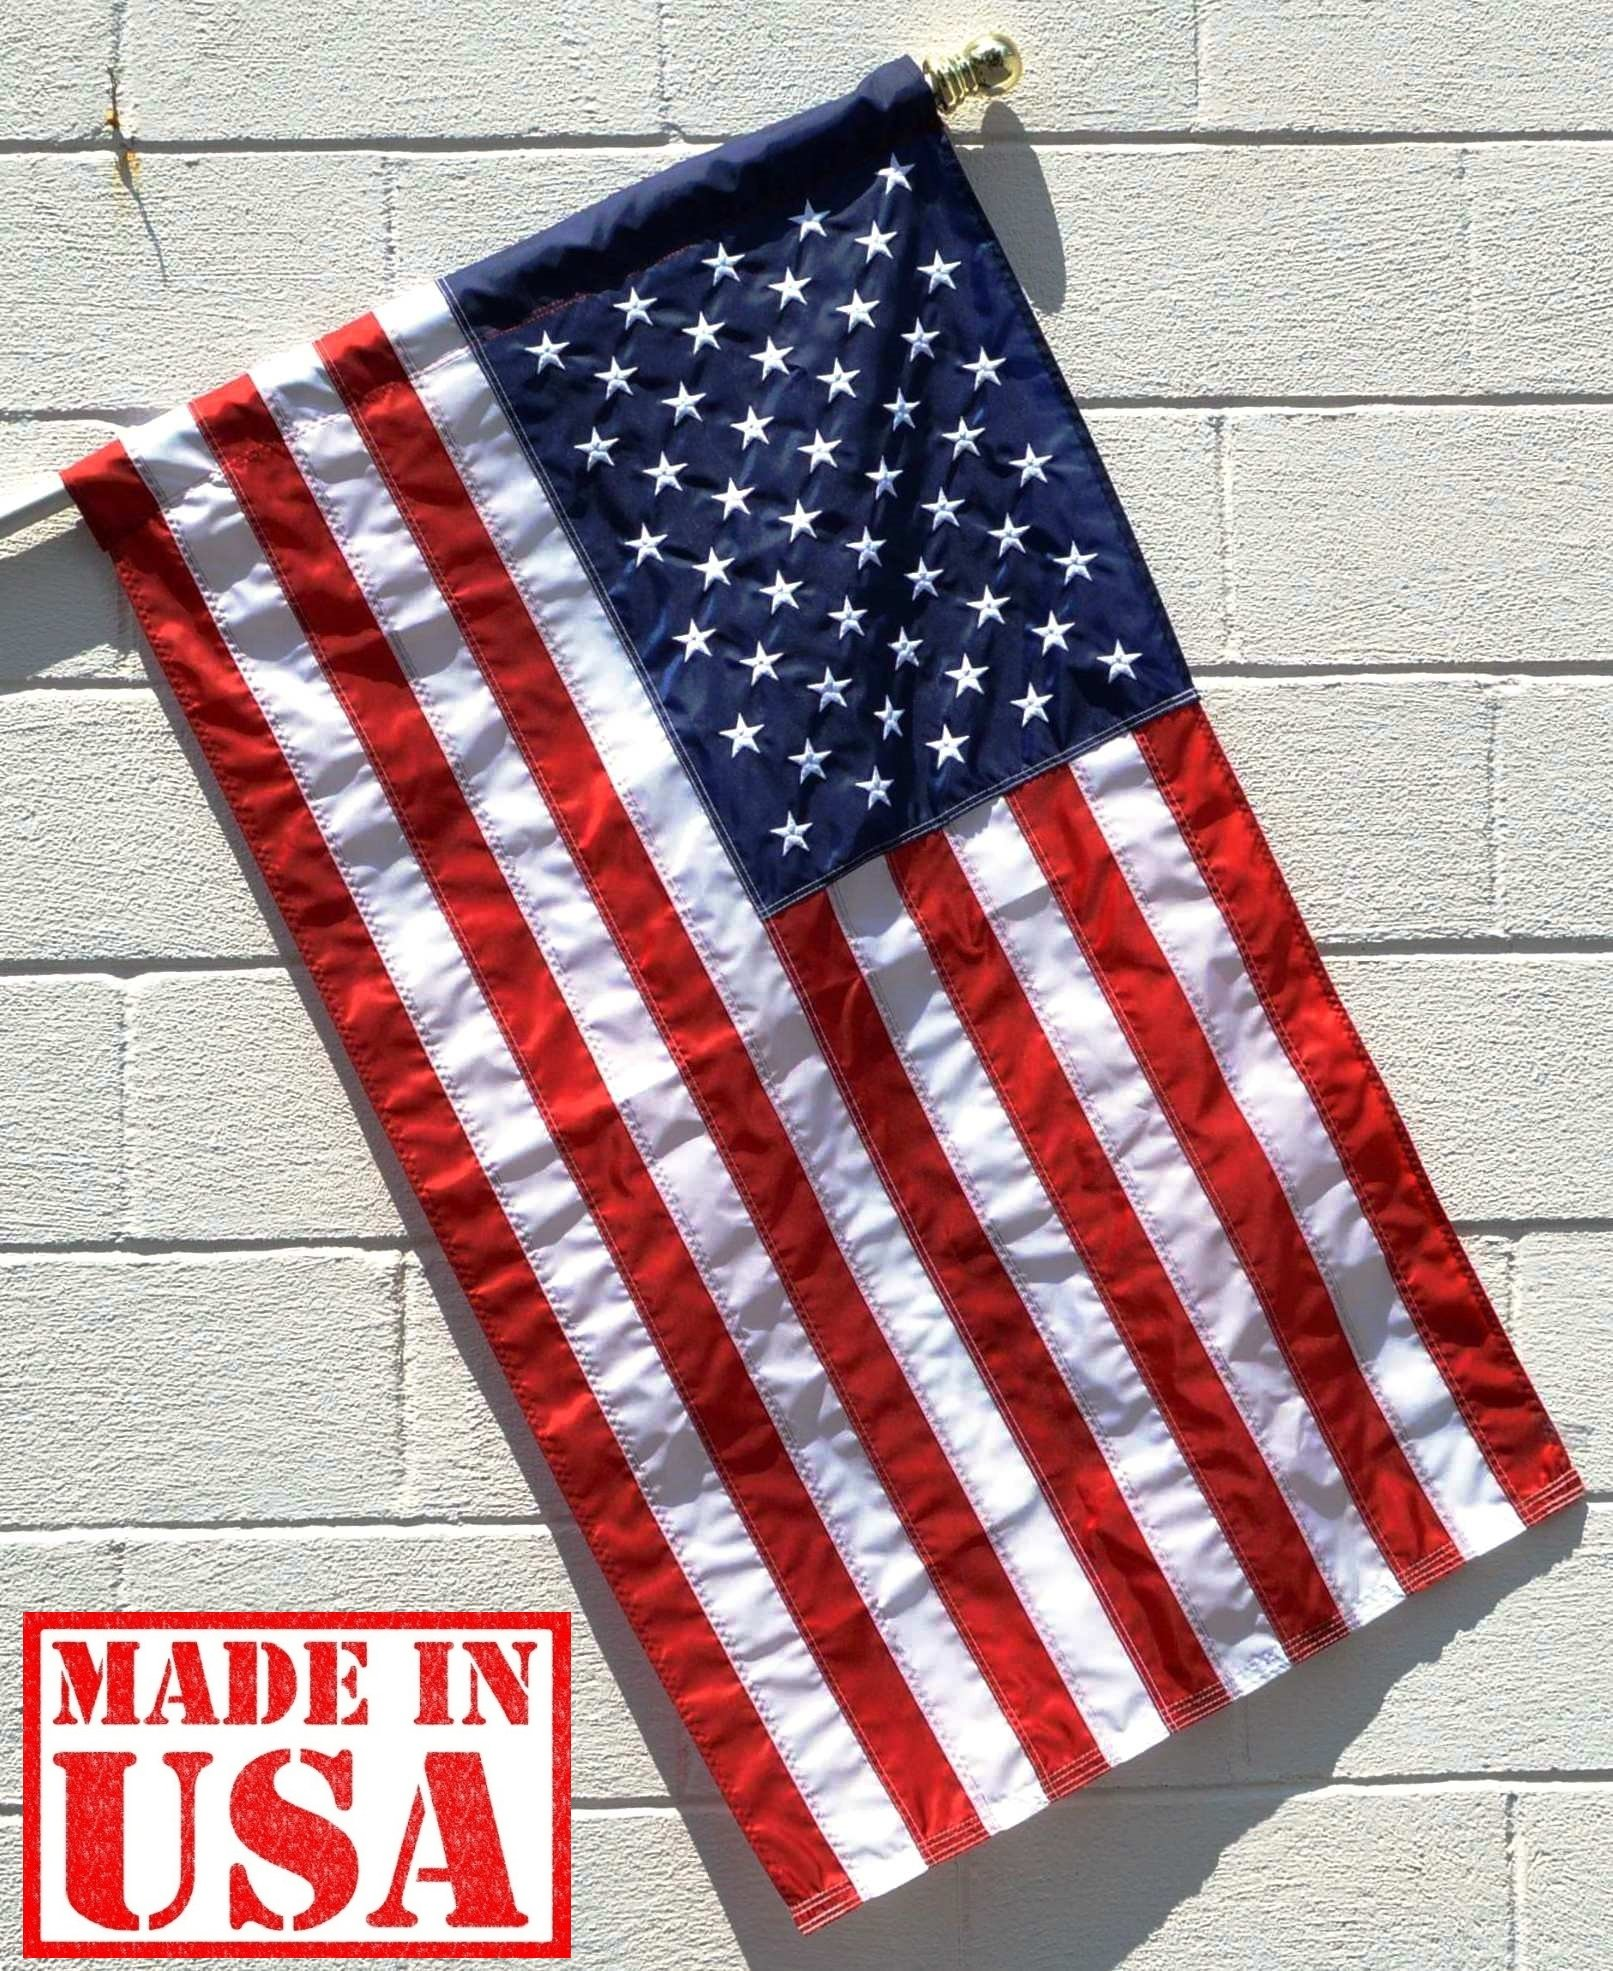 US Flag Factory - 3'x5' US USA AMERICAN FLAG (Pole Sleeve) (Embroidered Stars & Sewn Stripes) Outdoor SolarMax Nylon, UV fading resistant - Premium Quality - 100% Made in America